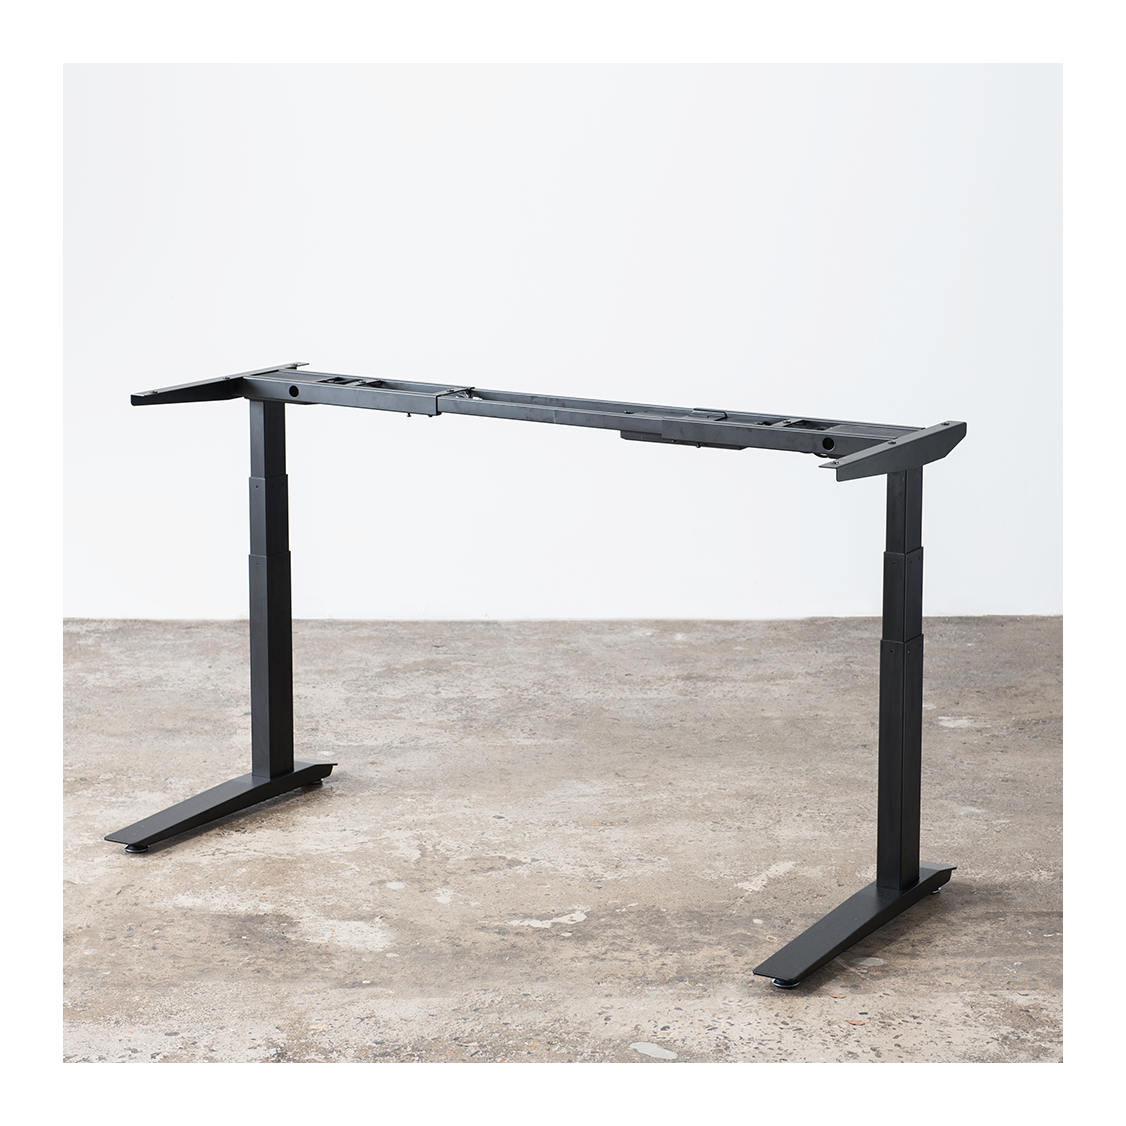 Amazing Jarvis Frame Only Stand Adjustable Height Desk Standing Download Free Architecture Designs Xaembritishbridgeorg